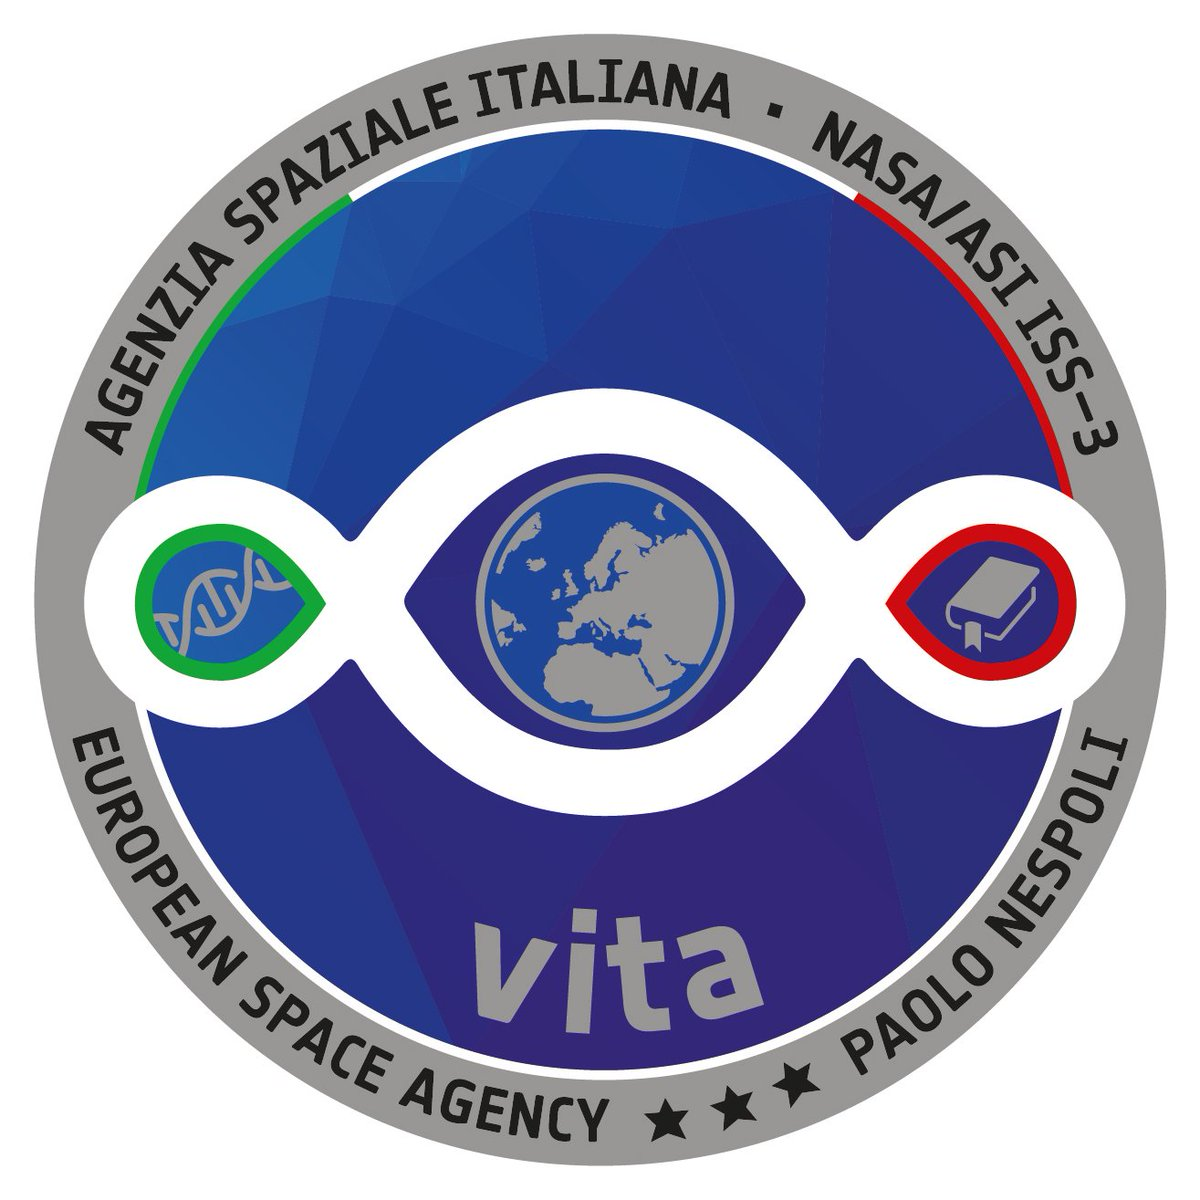 #VITA stands for #Vitality #Innovation #Technology and #Ability. Read more:  http:// bit.ly/2wLH65q  &nbsp;   #VITAMission @astro_paolo<br>http://pic.twitter.com/ao5xlcyLgj